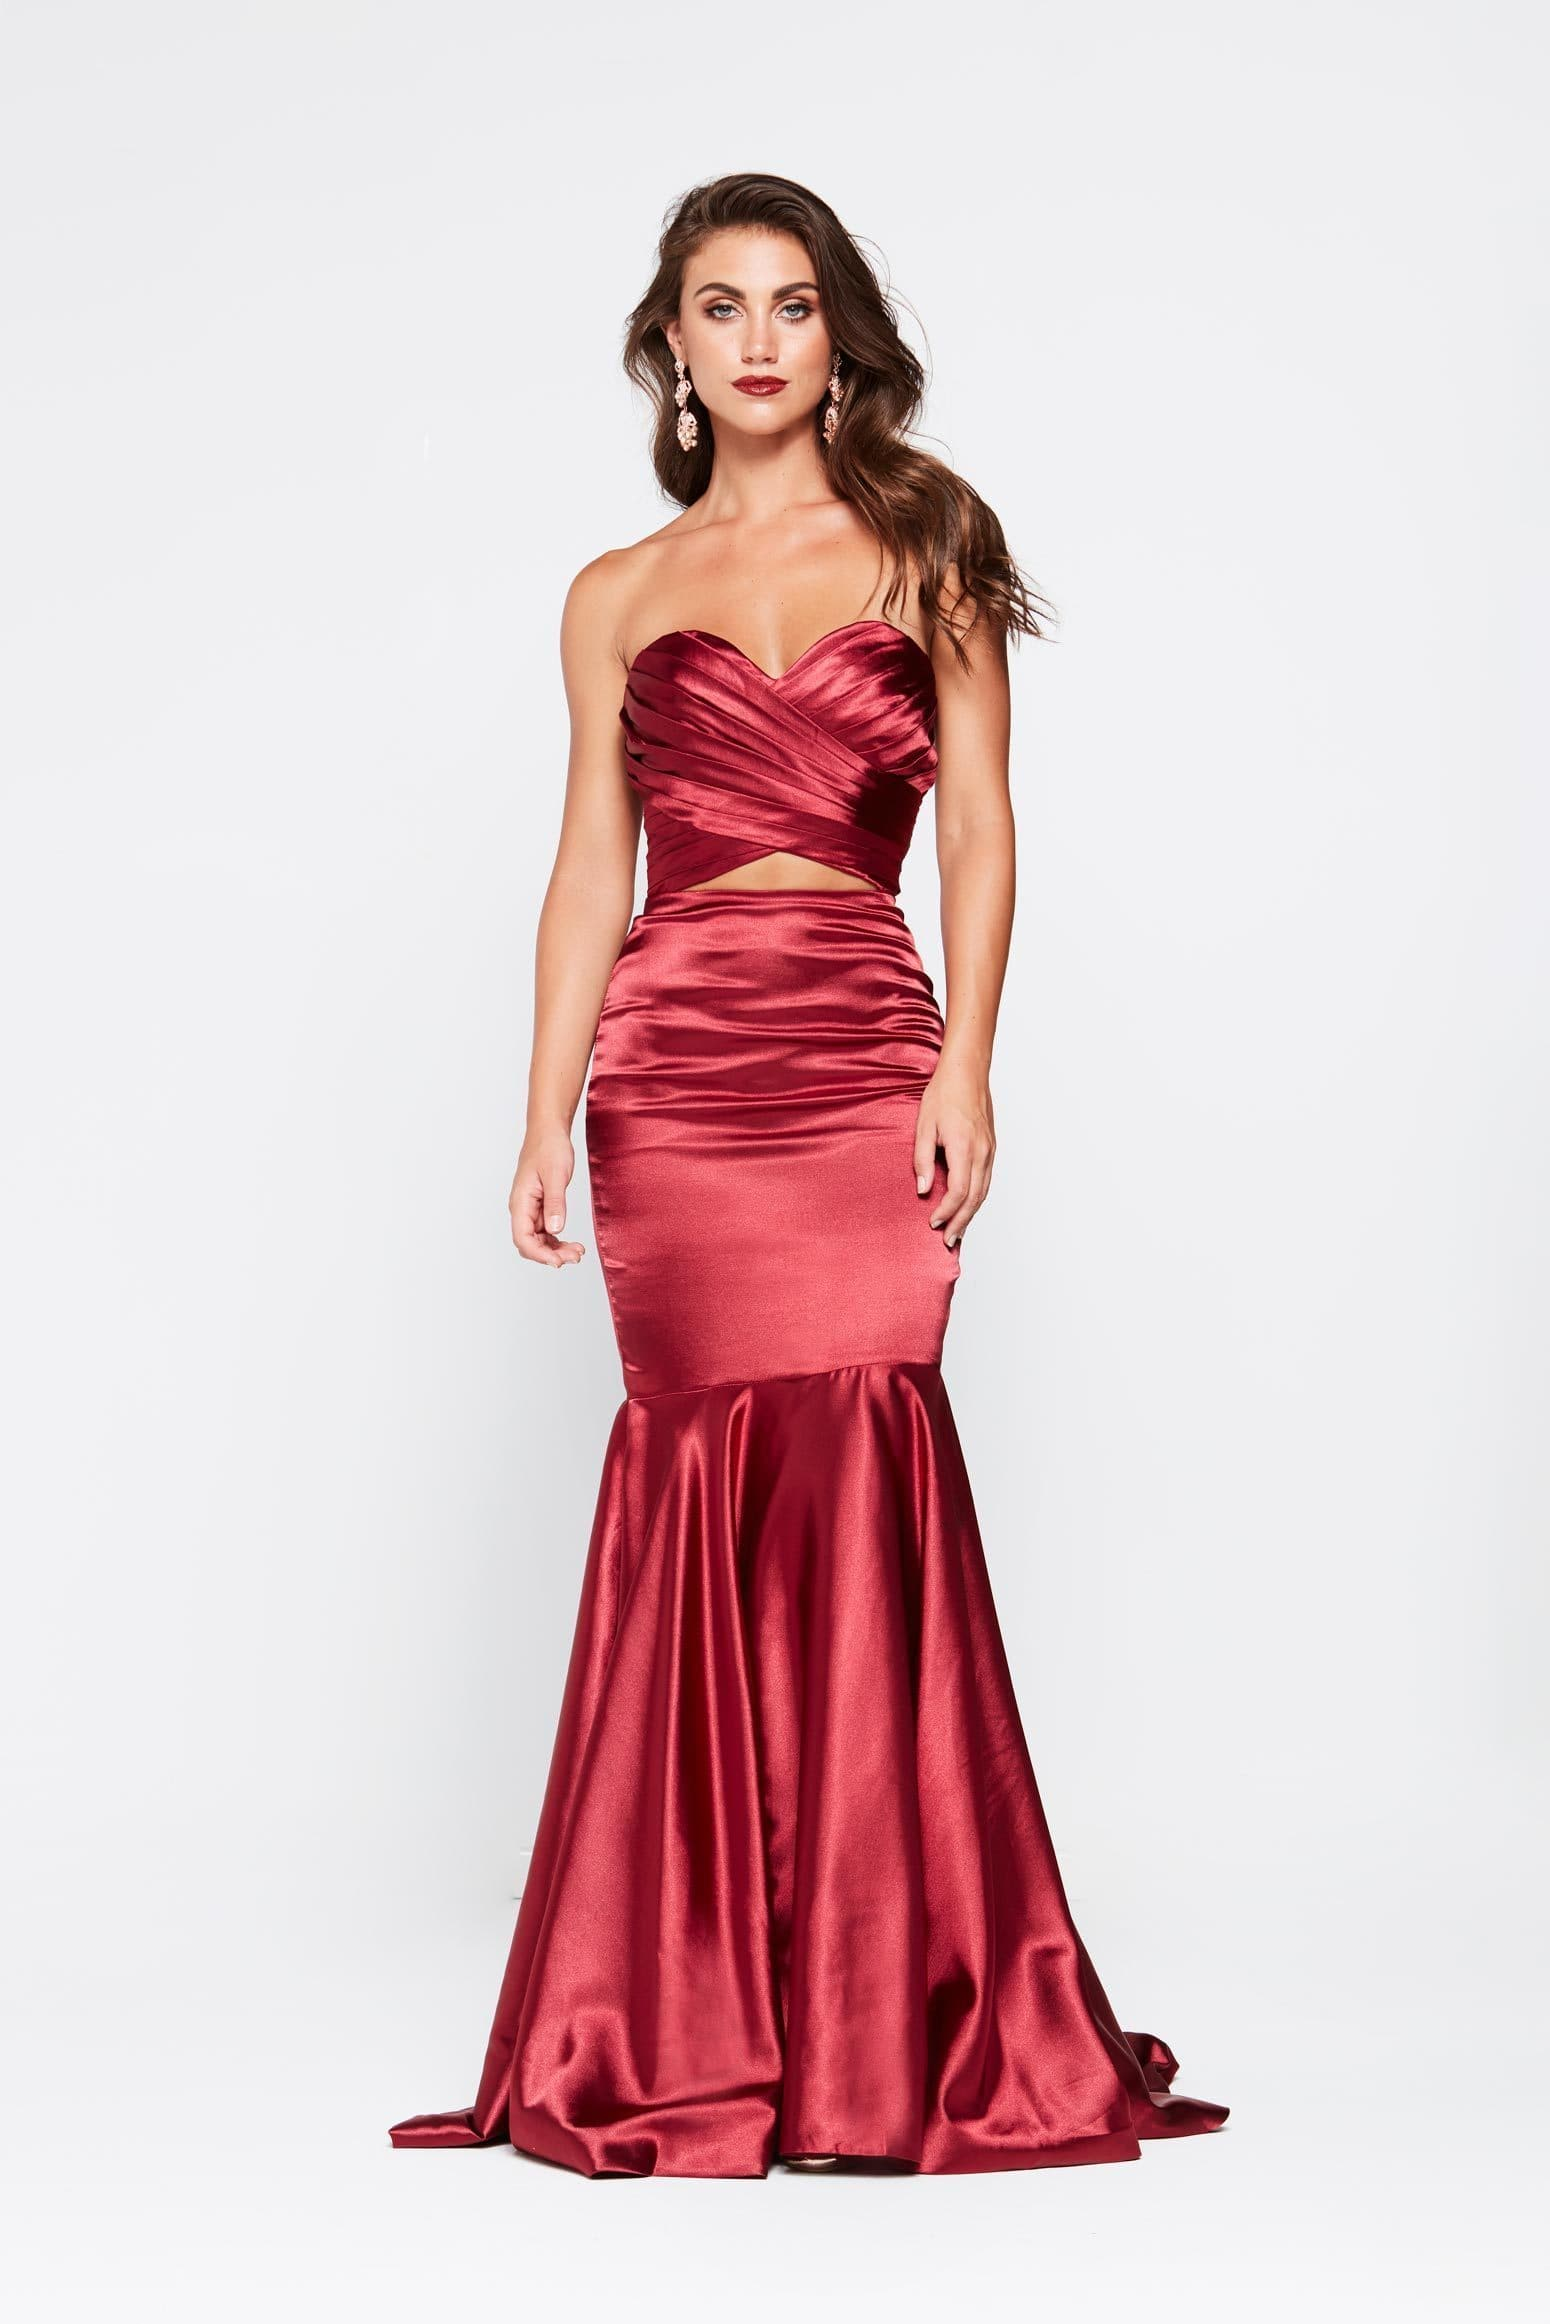 A&N Akira - Deep Red Satin Dress with Pleated Bodice and Mermaid Train